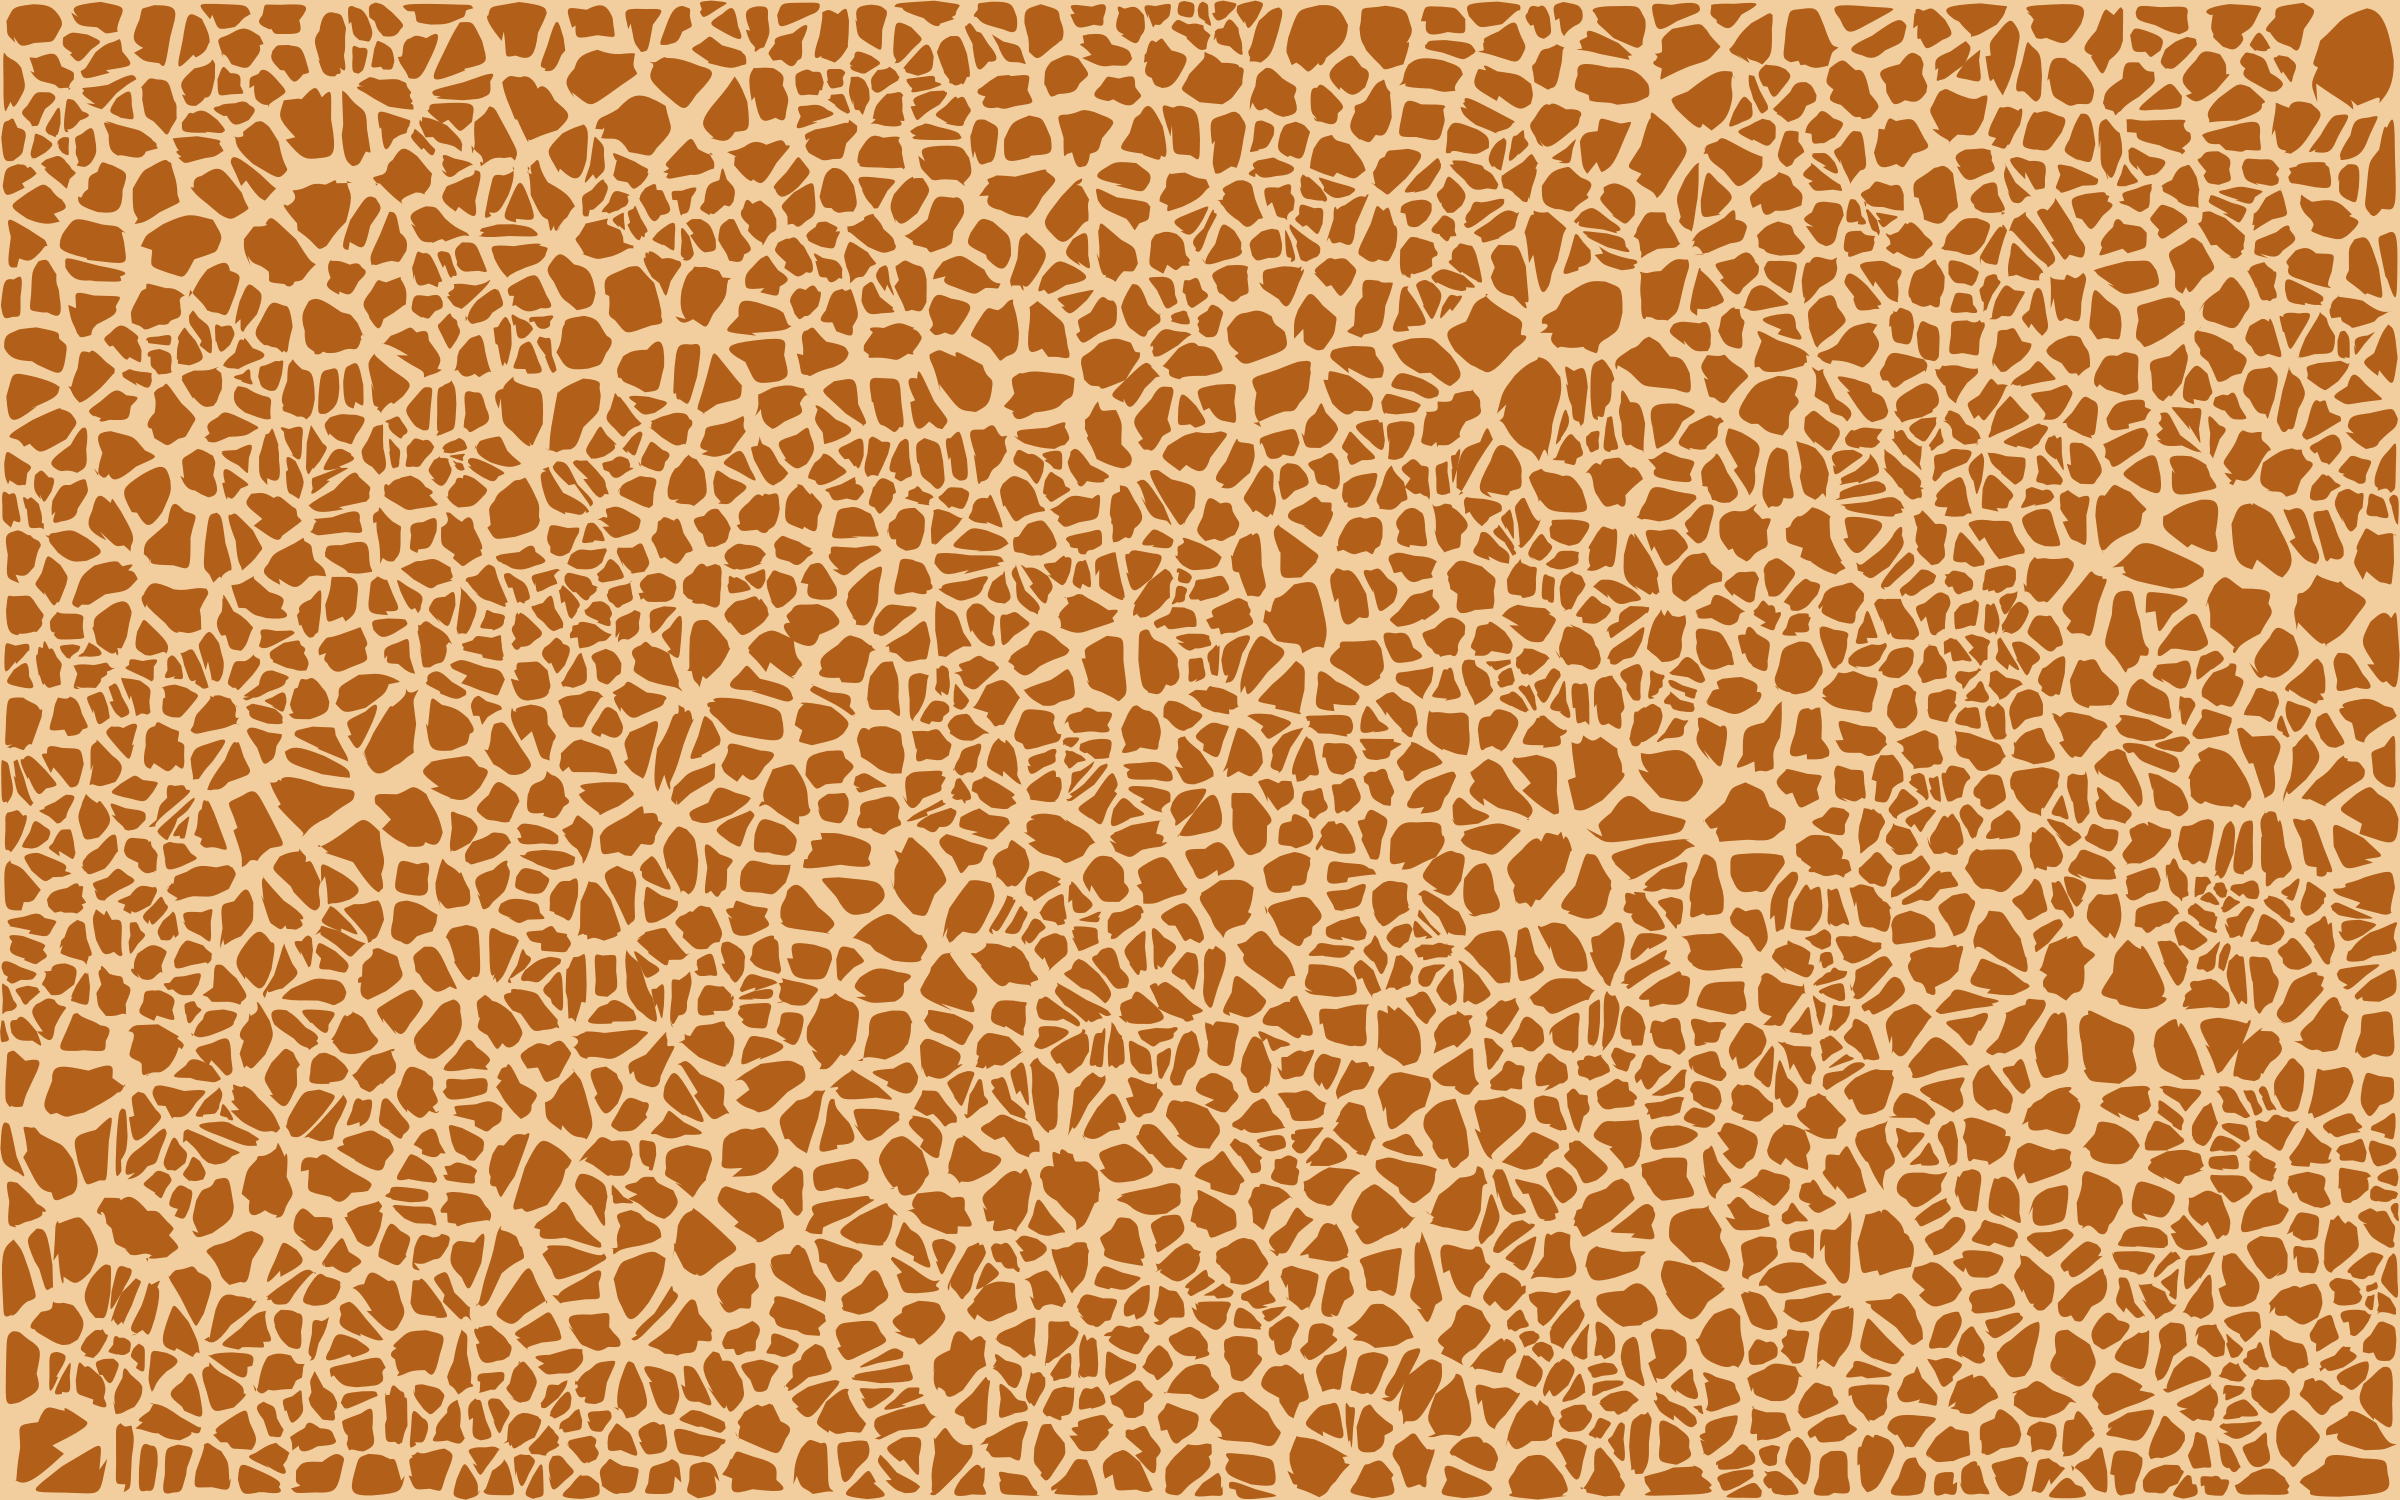 animal skin patterns giraffe - photo #1